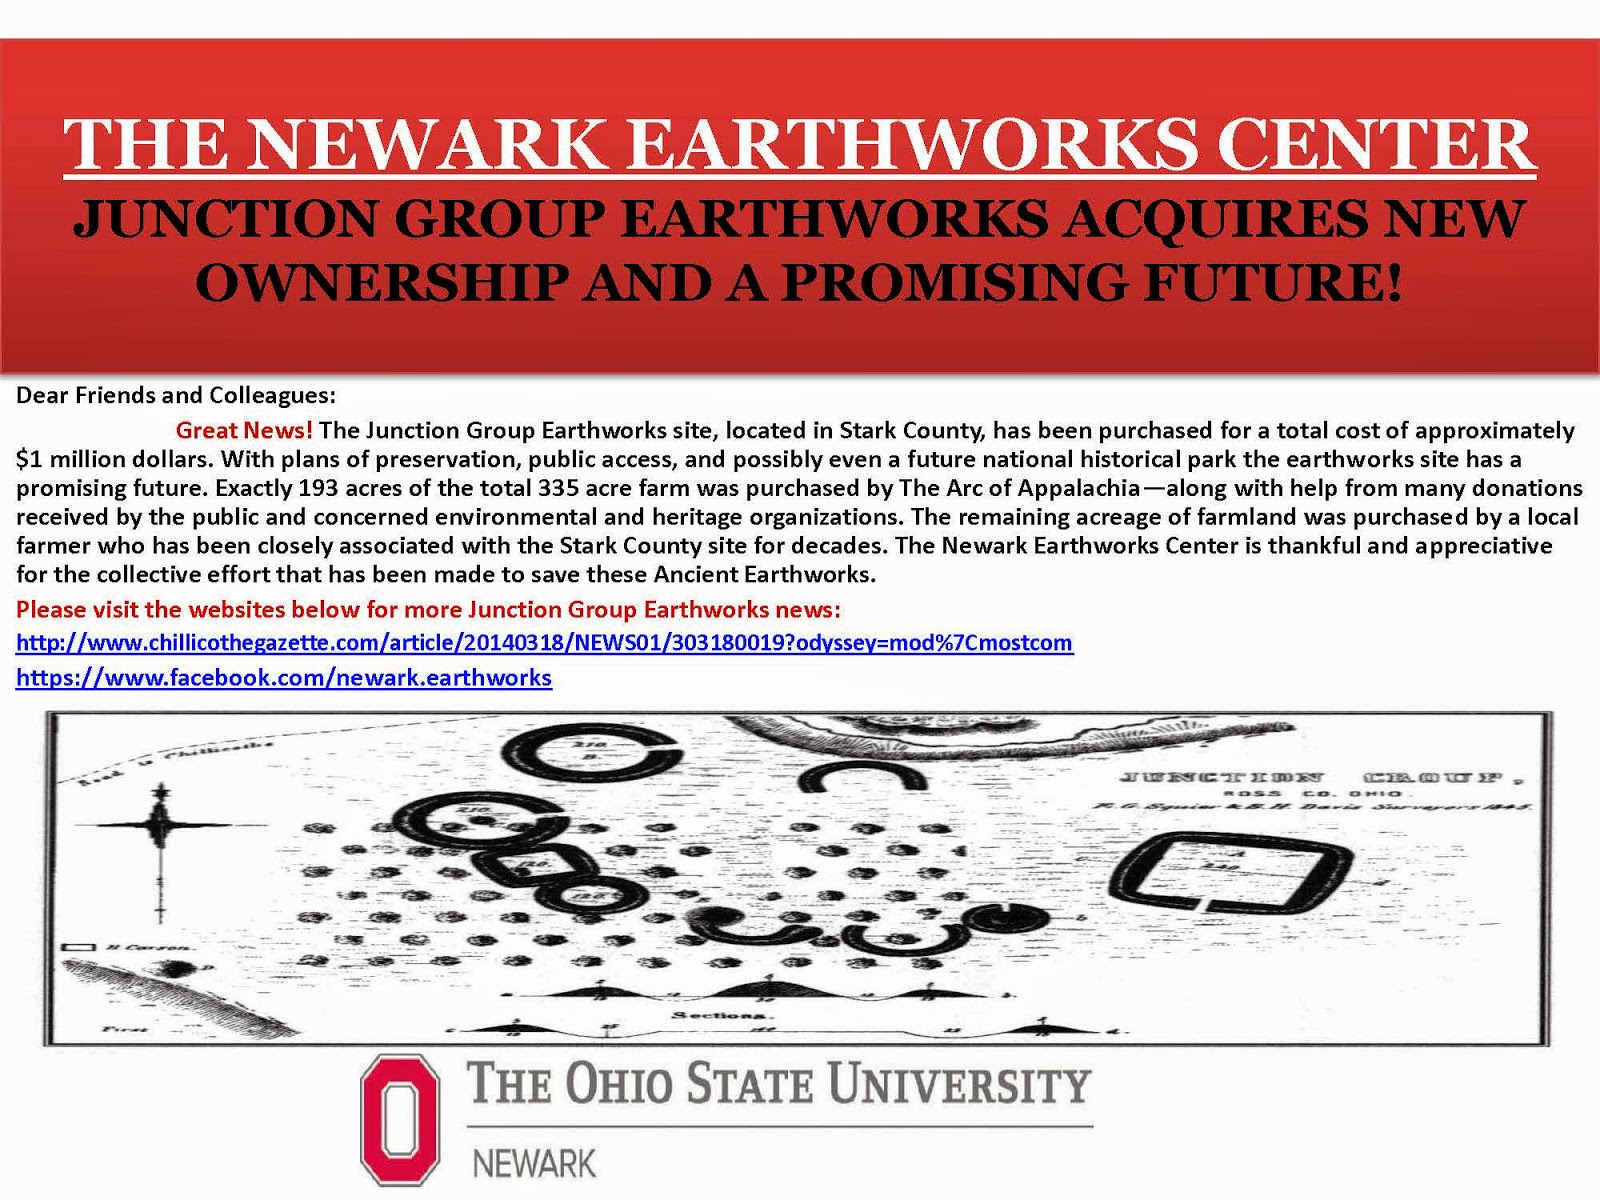 The Newark Earthworks Center Junction Group Earthworks News Announcement